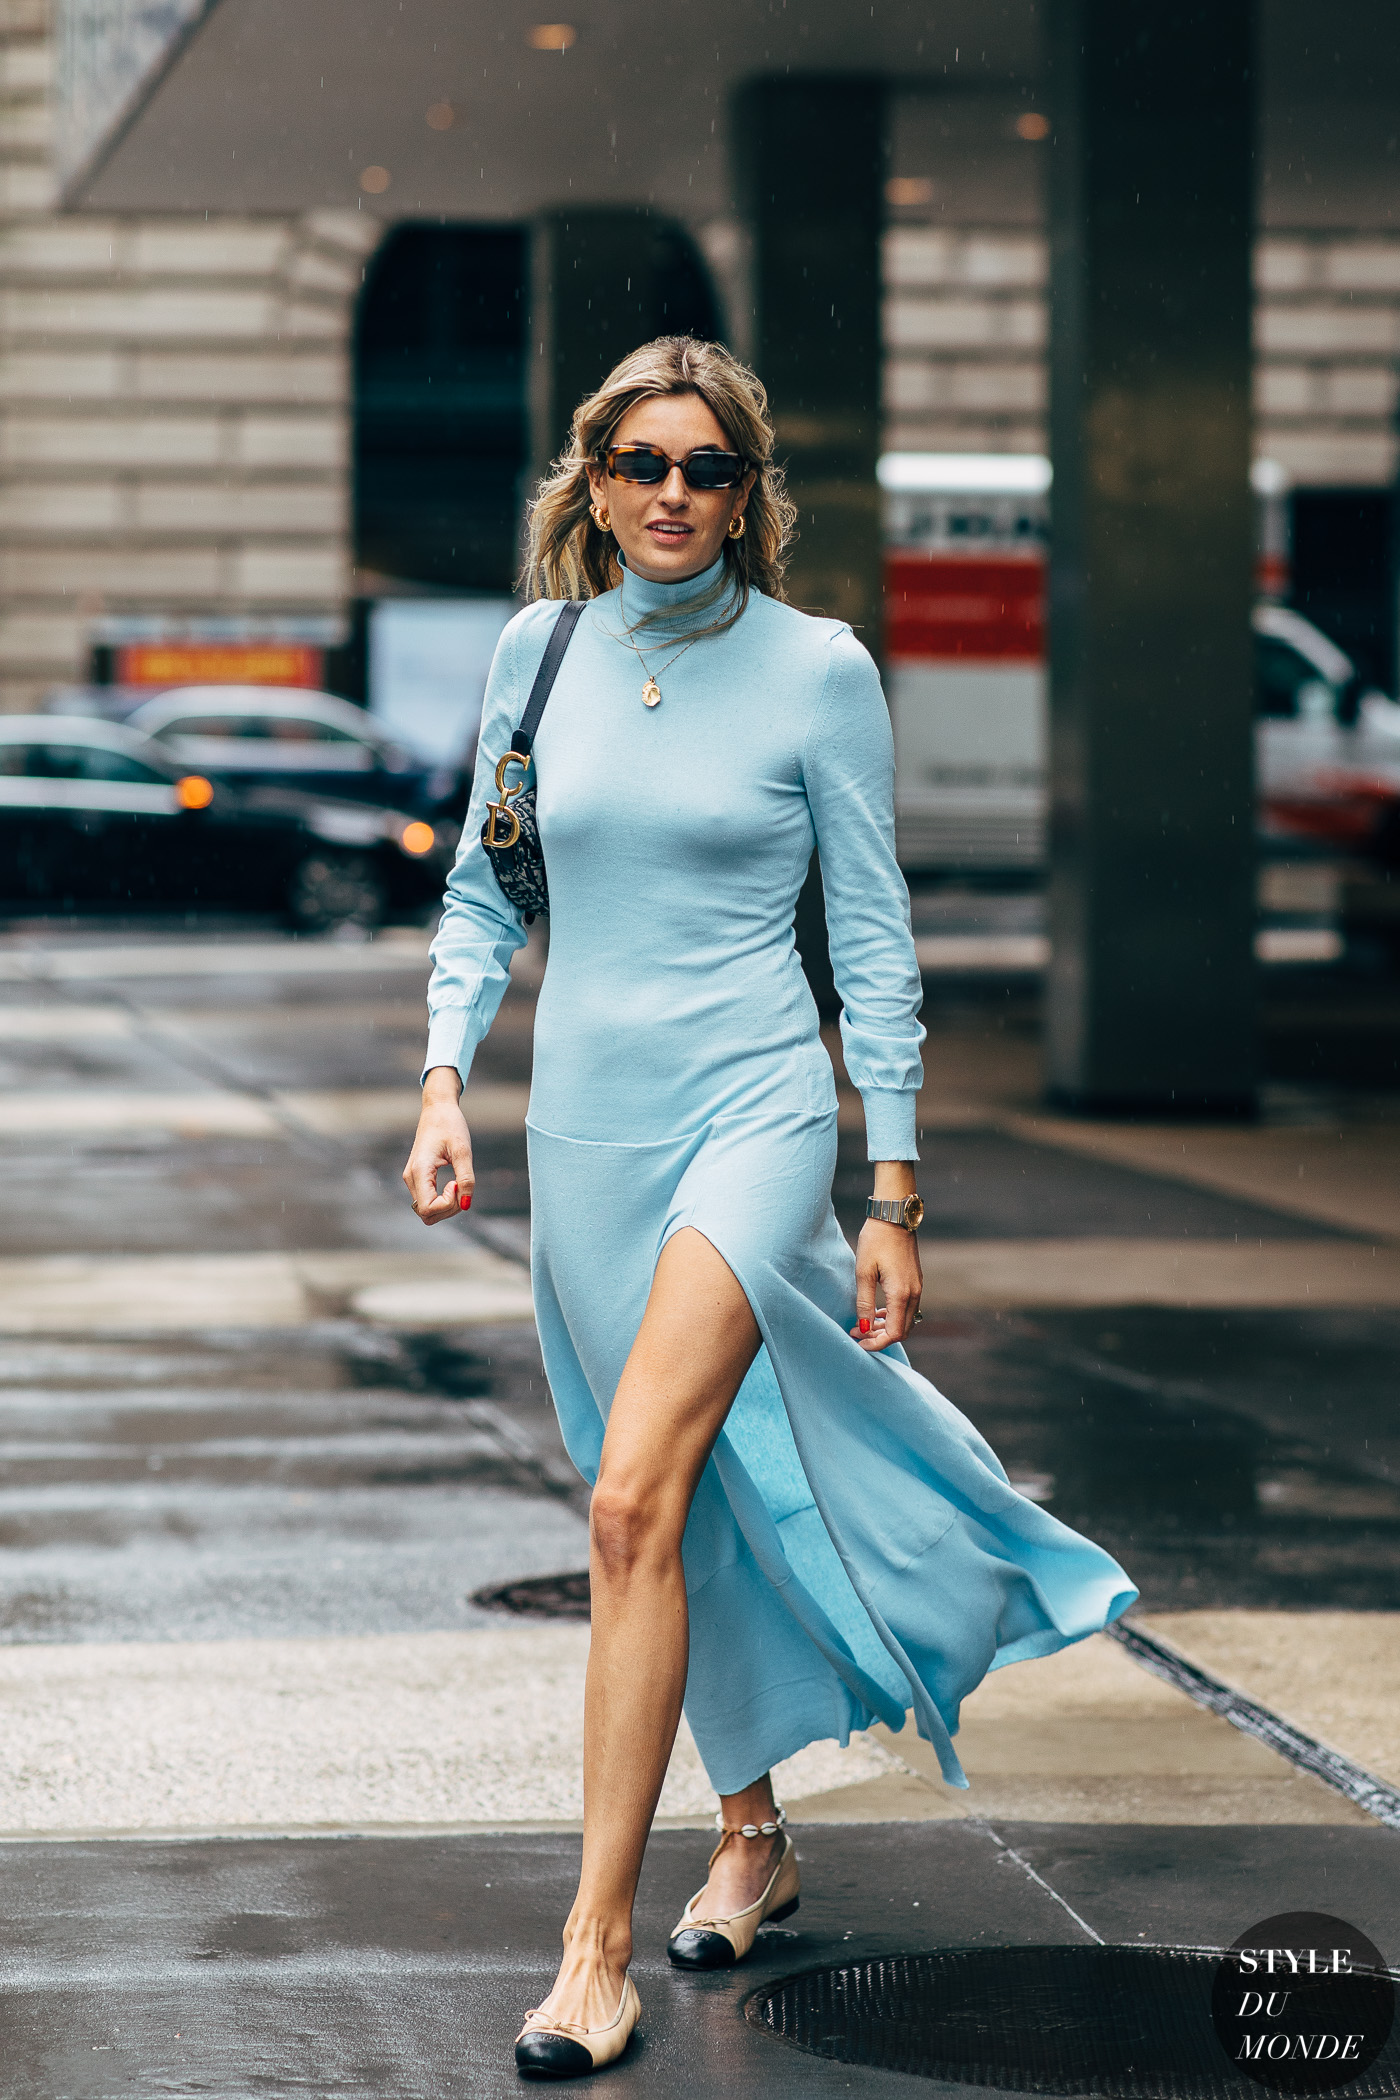 New York Ss 2019 Street Style Camille Charriere Style